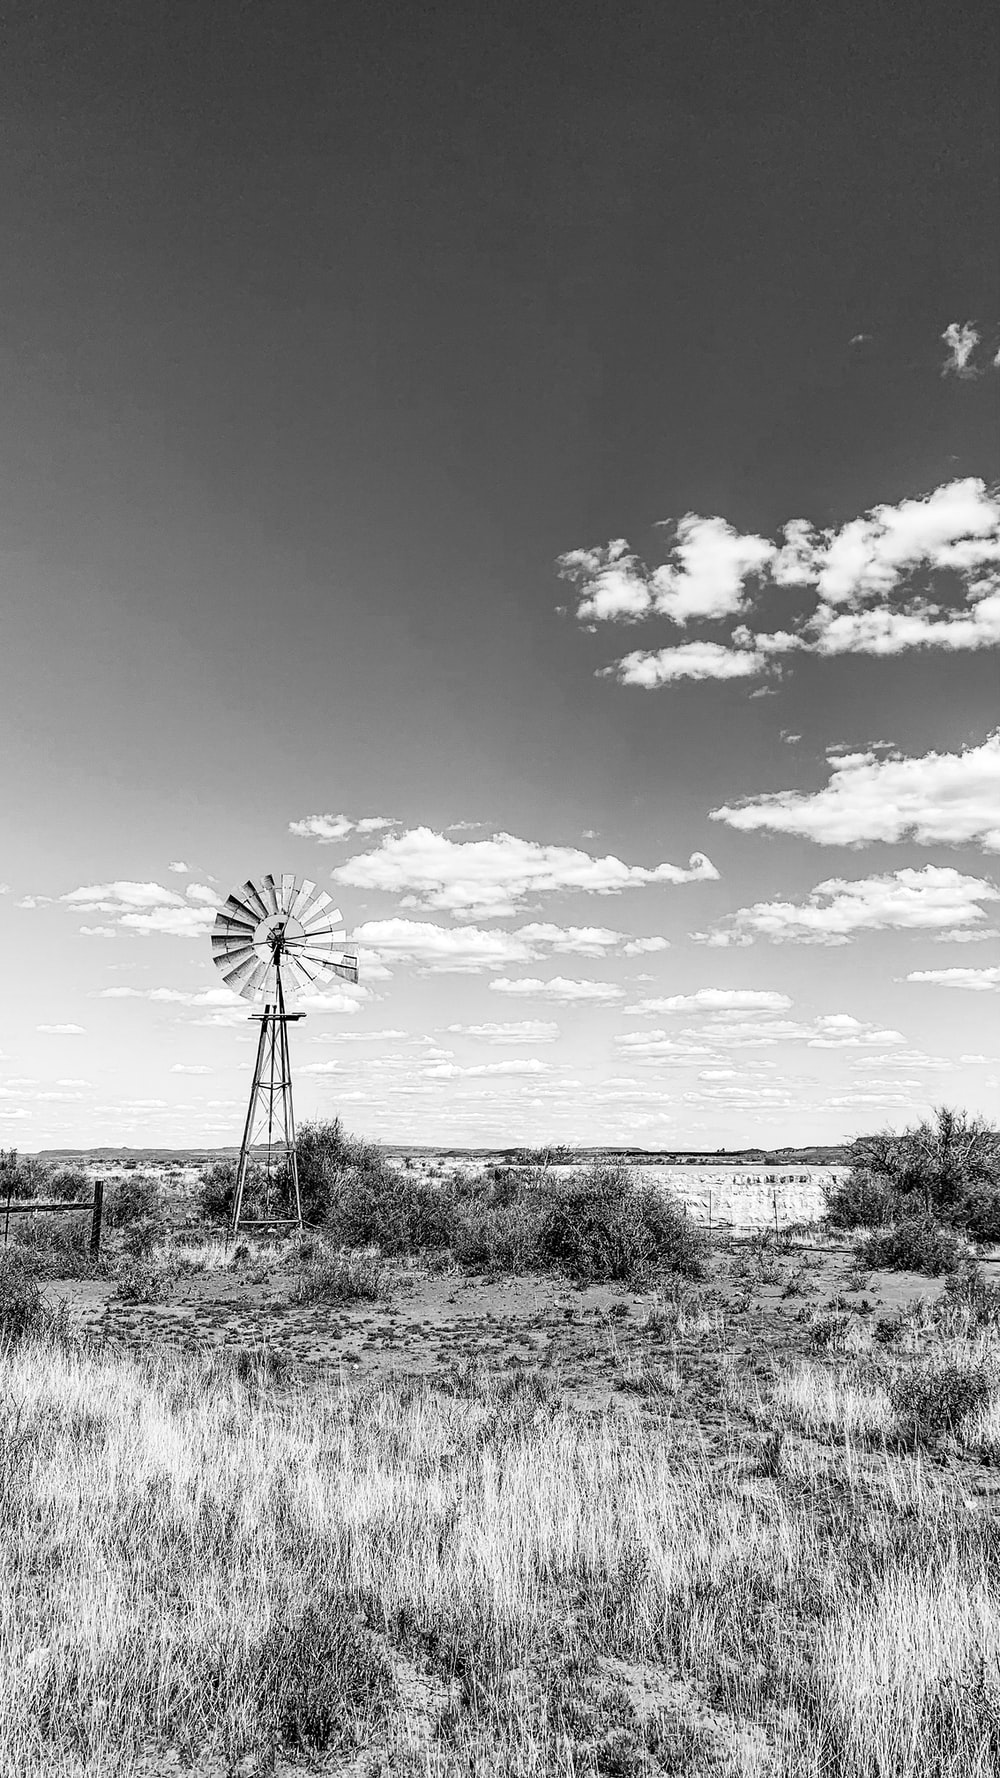 grayscale photo of windmill under cloudy sky